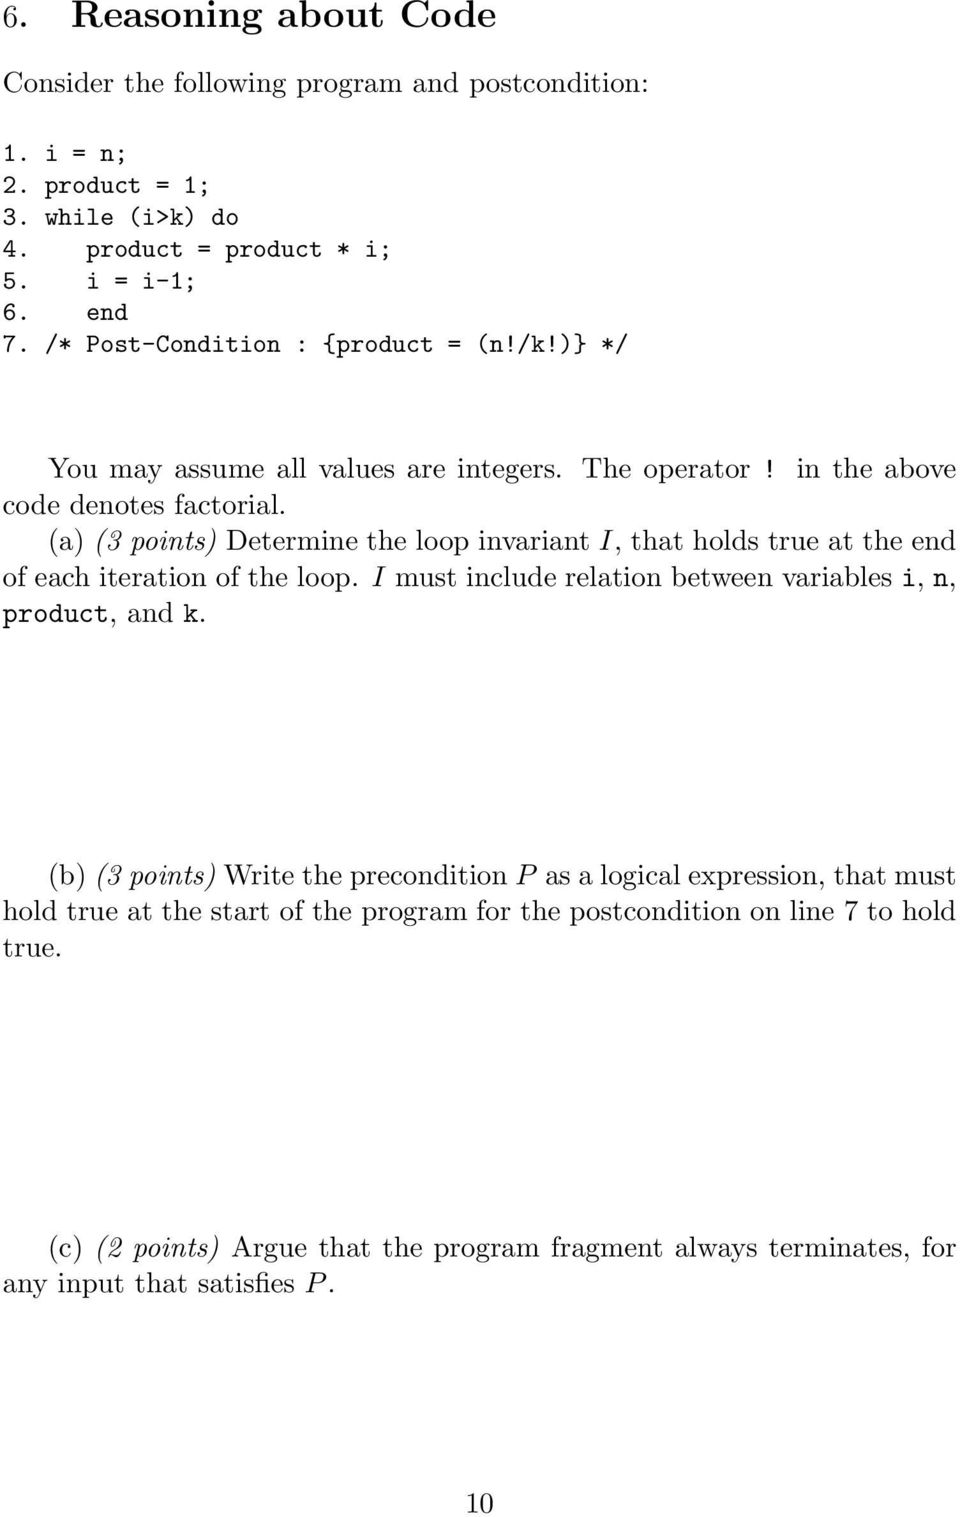 (a) (3 points) Determine the loop invariant I, that holds true at the end of each iteration of the loop. I must include relation between variables i, n, product, and k.